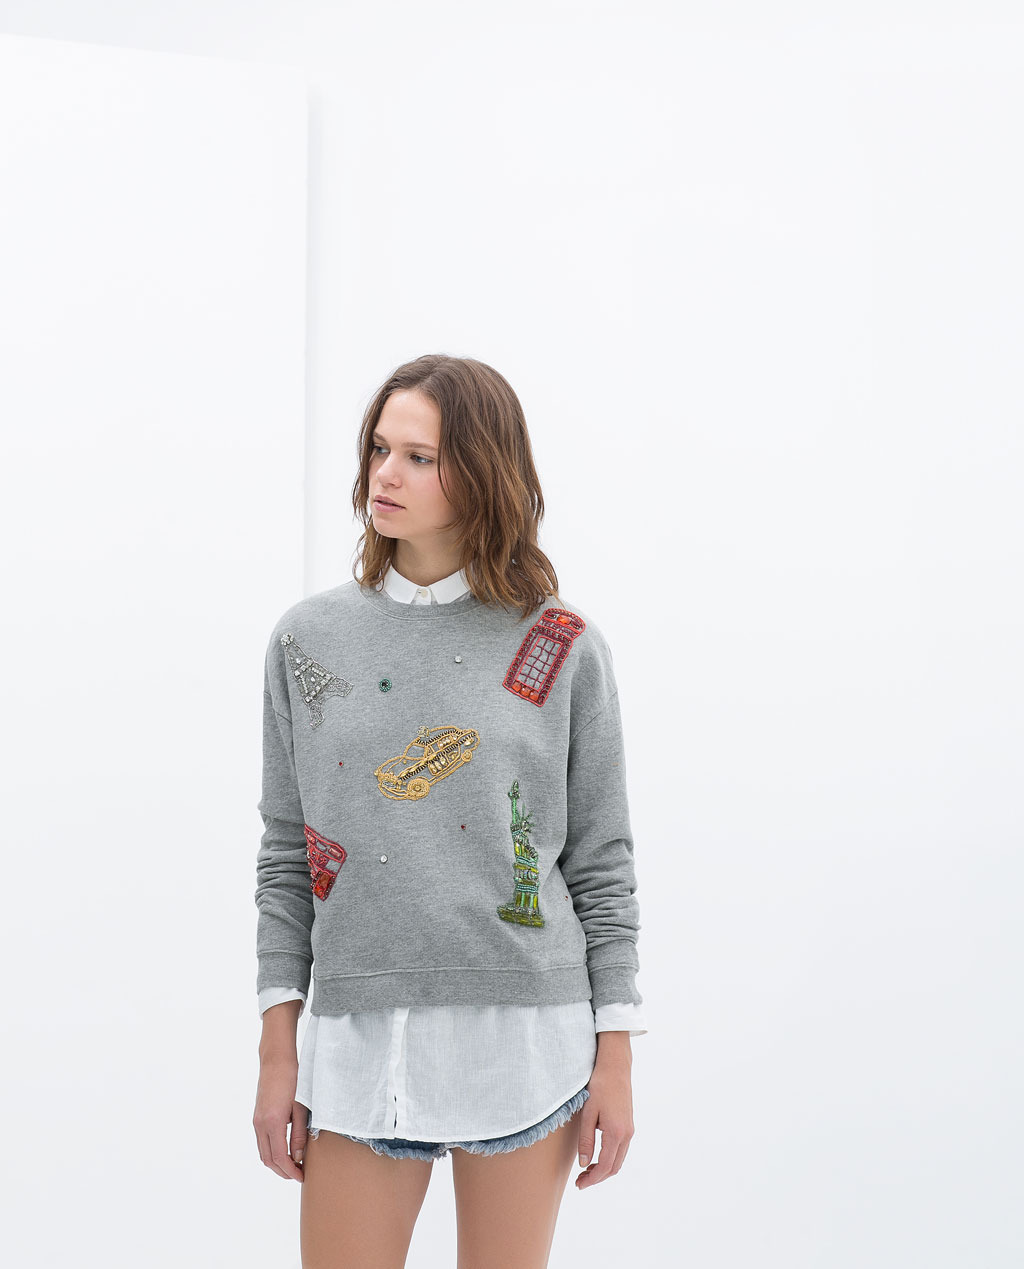 Printed Sweatshirt - pattern: plain; style: sweat top; secondary colour: true red; predominant colour: mid grey; occasions: casual; length: standard; fibres: cotton - 100%; fit: loose; neckline: crew; sleeve length: long sleeve; sleeve style: standard; pattern type: fabric; texture group: jersey - stretchy/drapey; embellishment: beading; season: s/s 2014